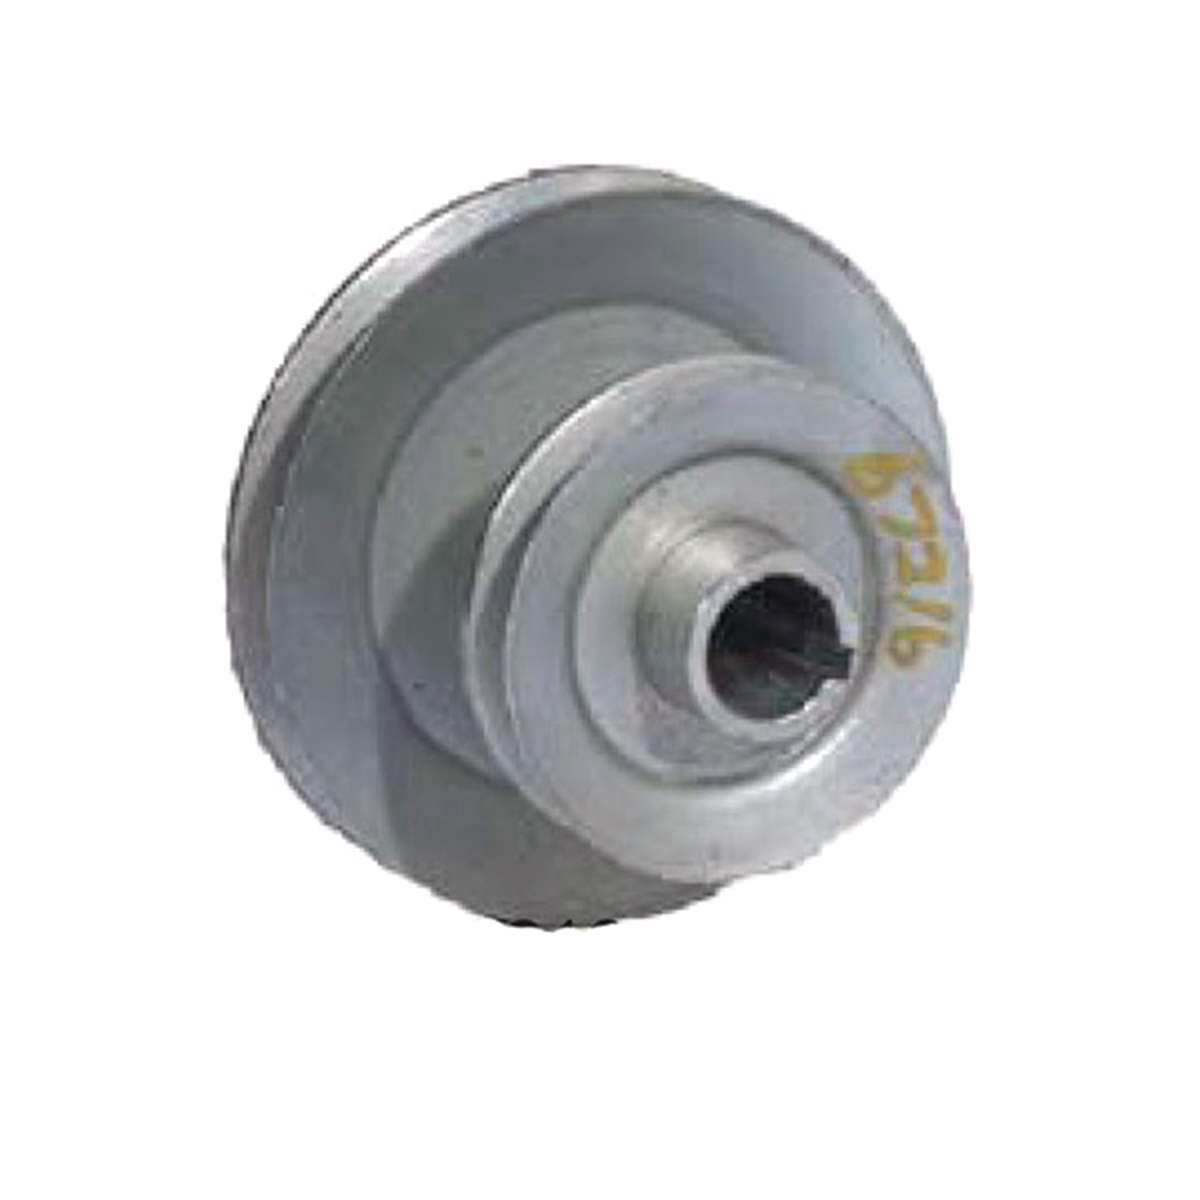 67216 Dixie Chopper Engine Pulley 1.125